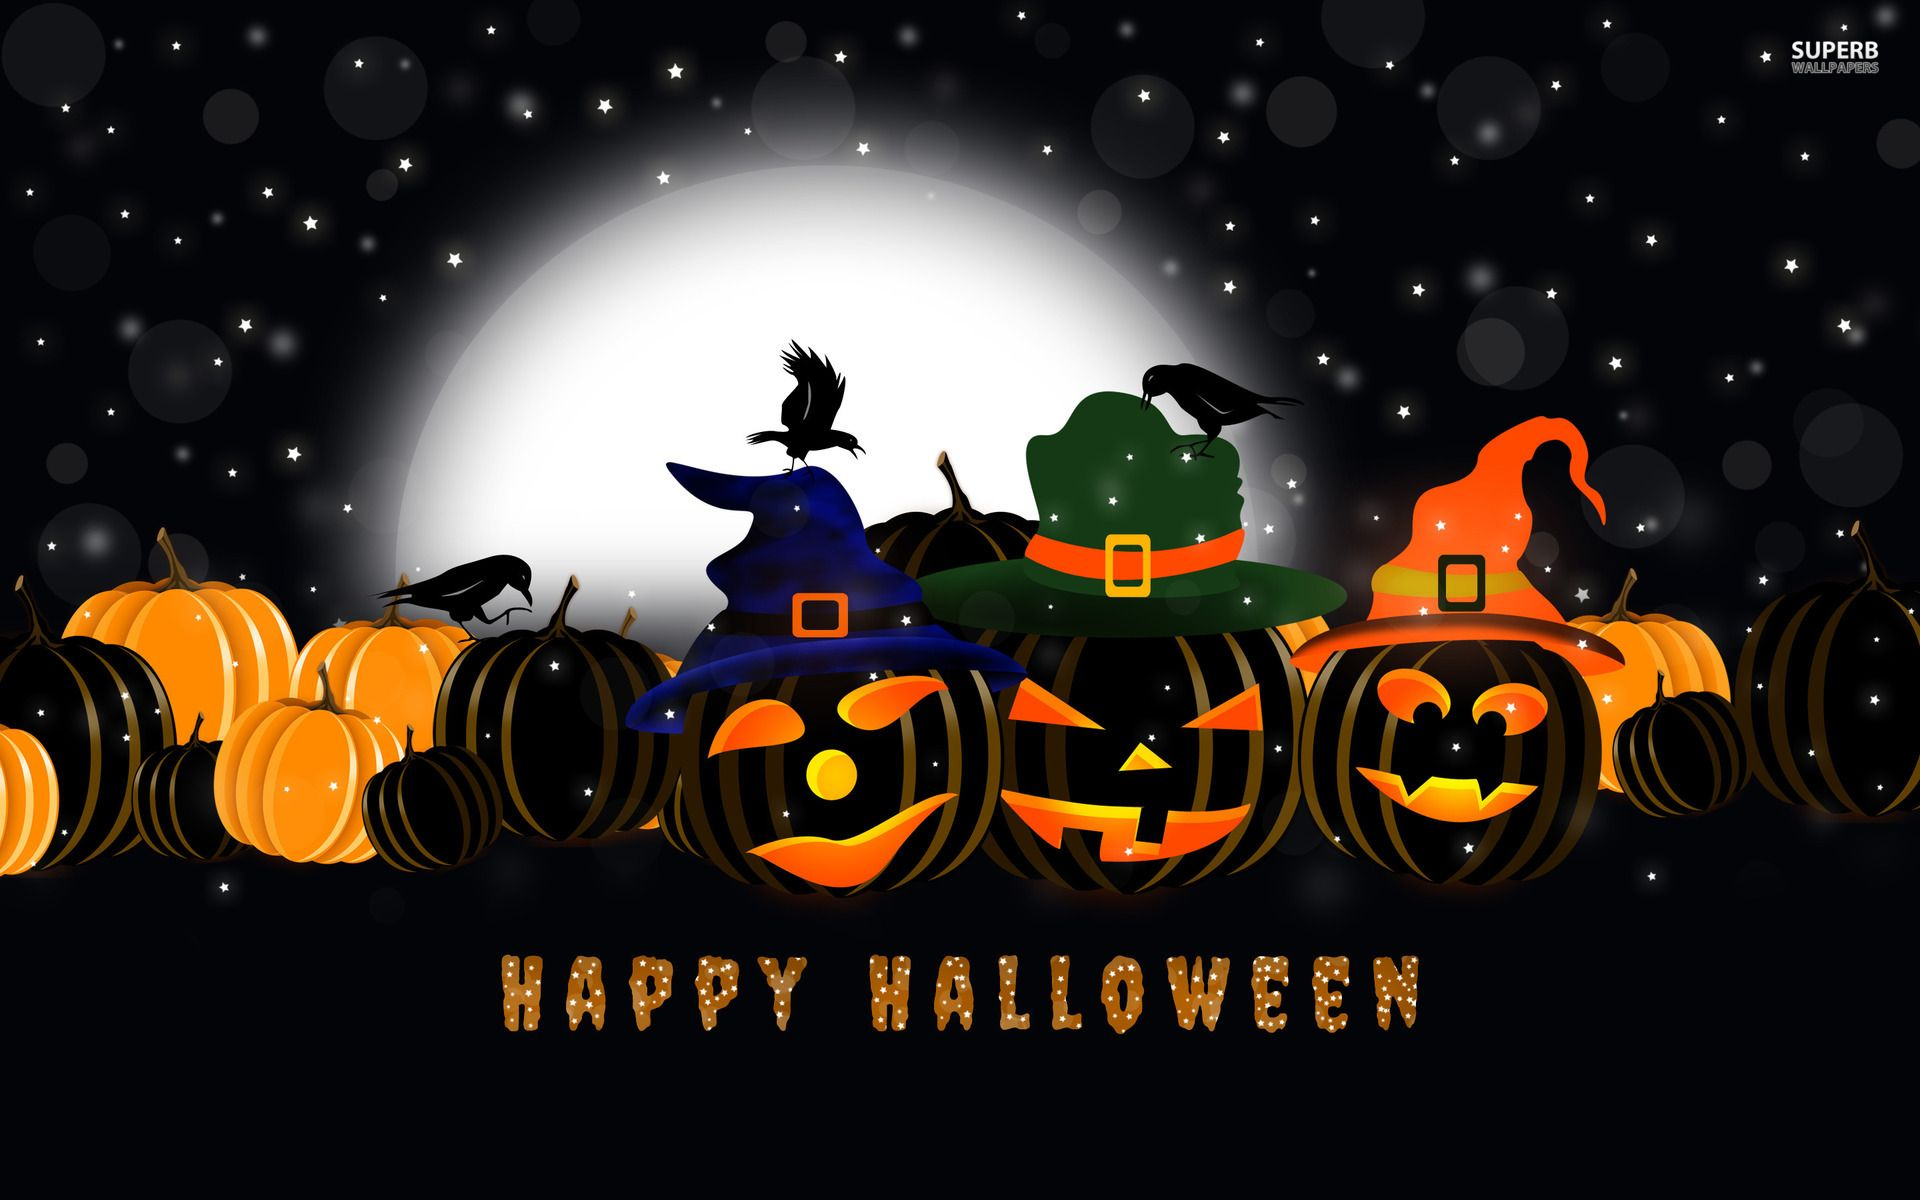 Download Happy Halloween Wallpapers For Free Halloween Wishes Halloween Images Happy Halloween